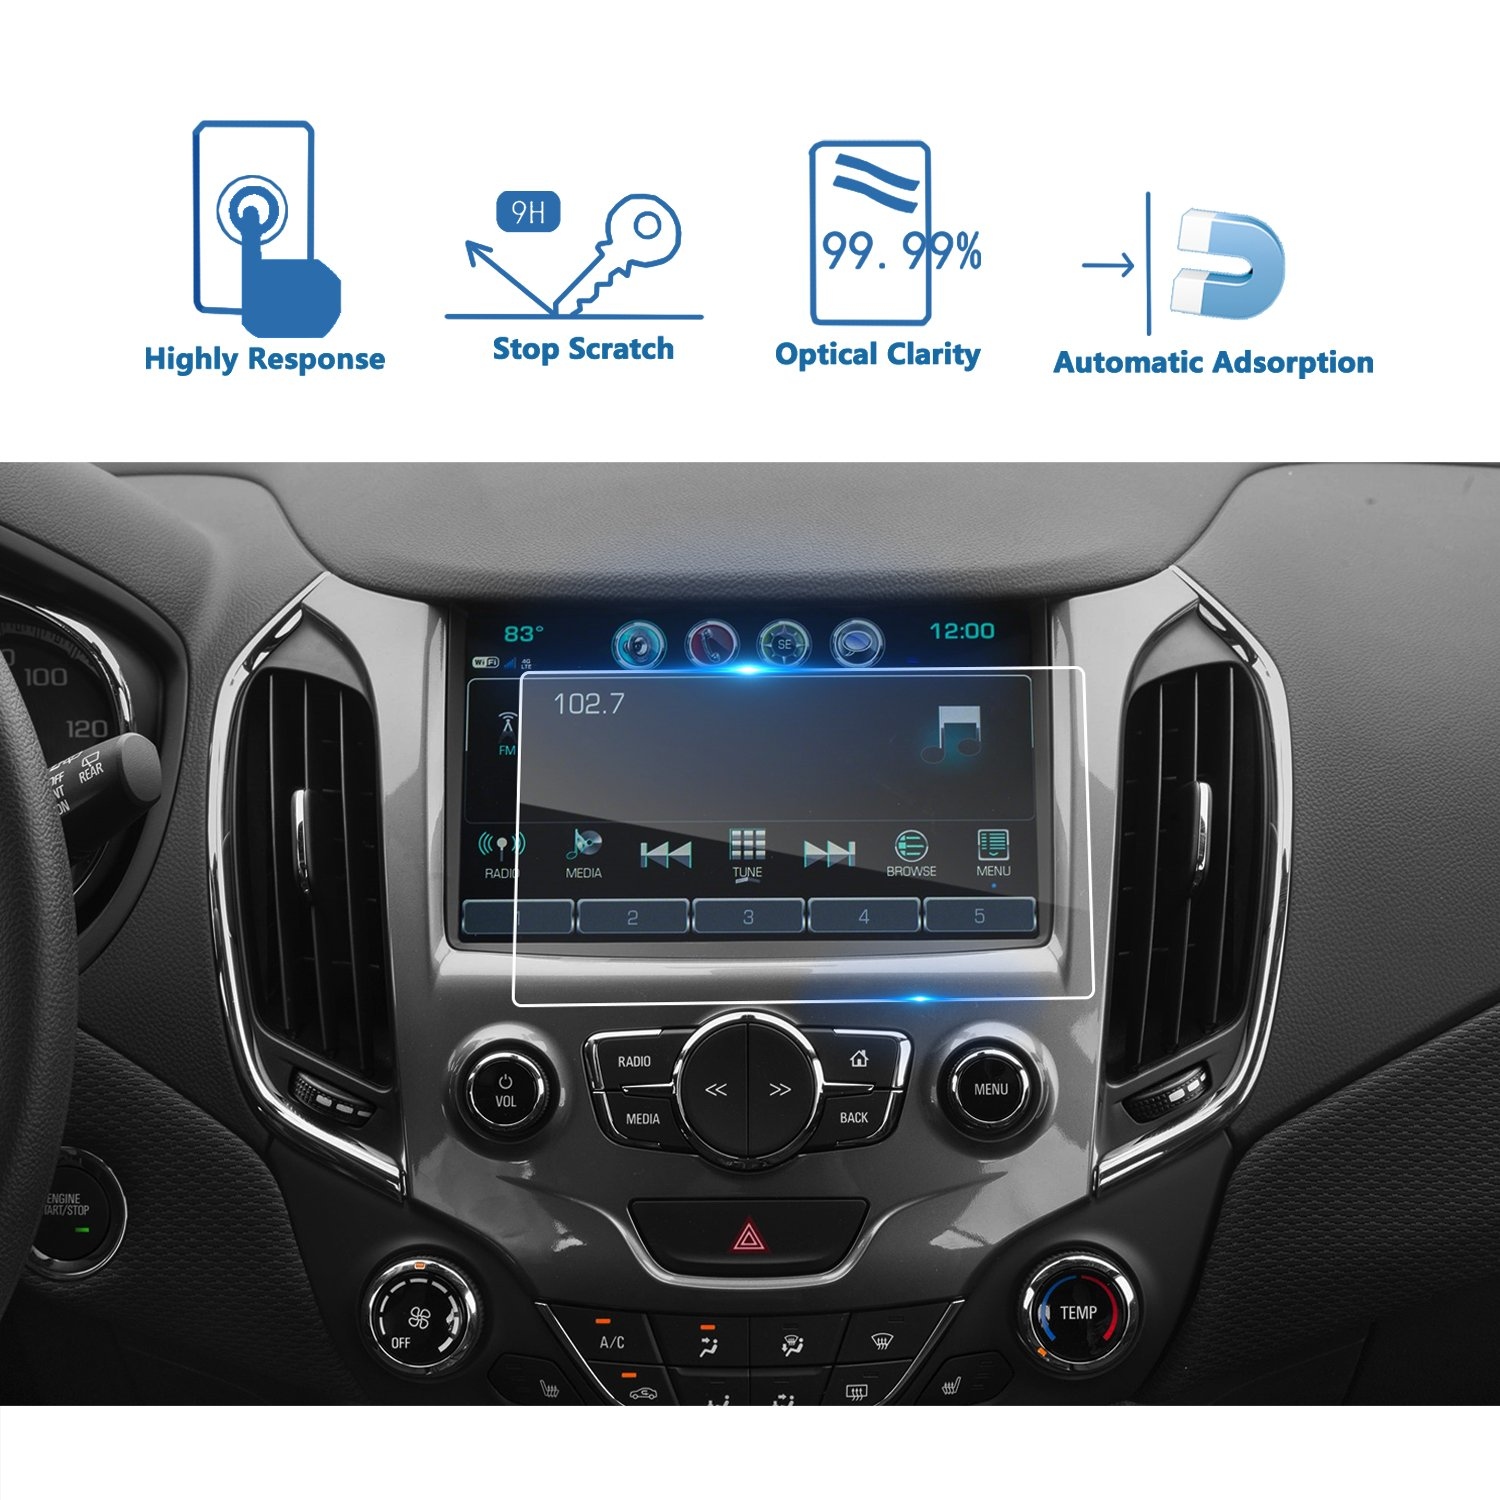 LFOTPP Chevrolet Cruze 8 Inch 2016-2018 MyLink High Configuration Car Navigation Screen Protector Clear Tempered Glass Infotainment Center Touch Display Screen Protector Anti Scratch High Clarity LiFan 2016 Chevrolet Cruze 17699